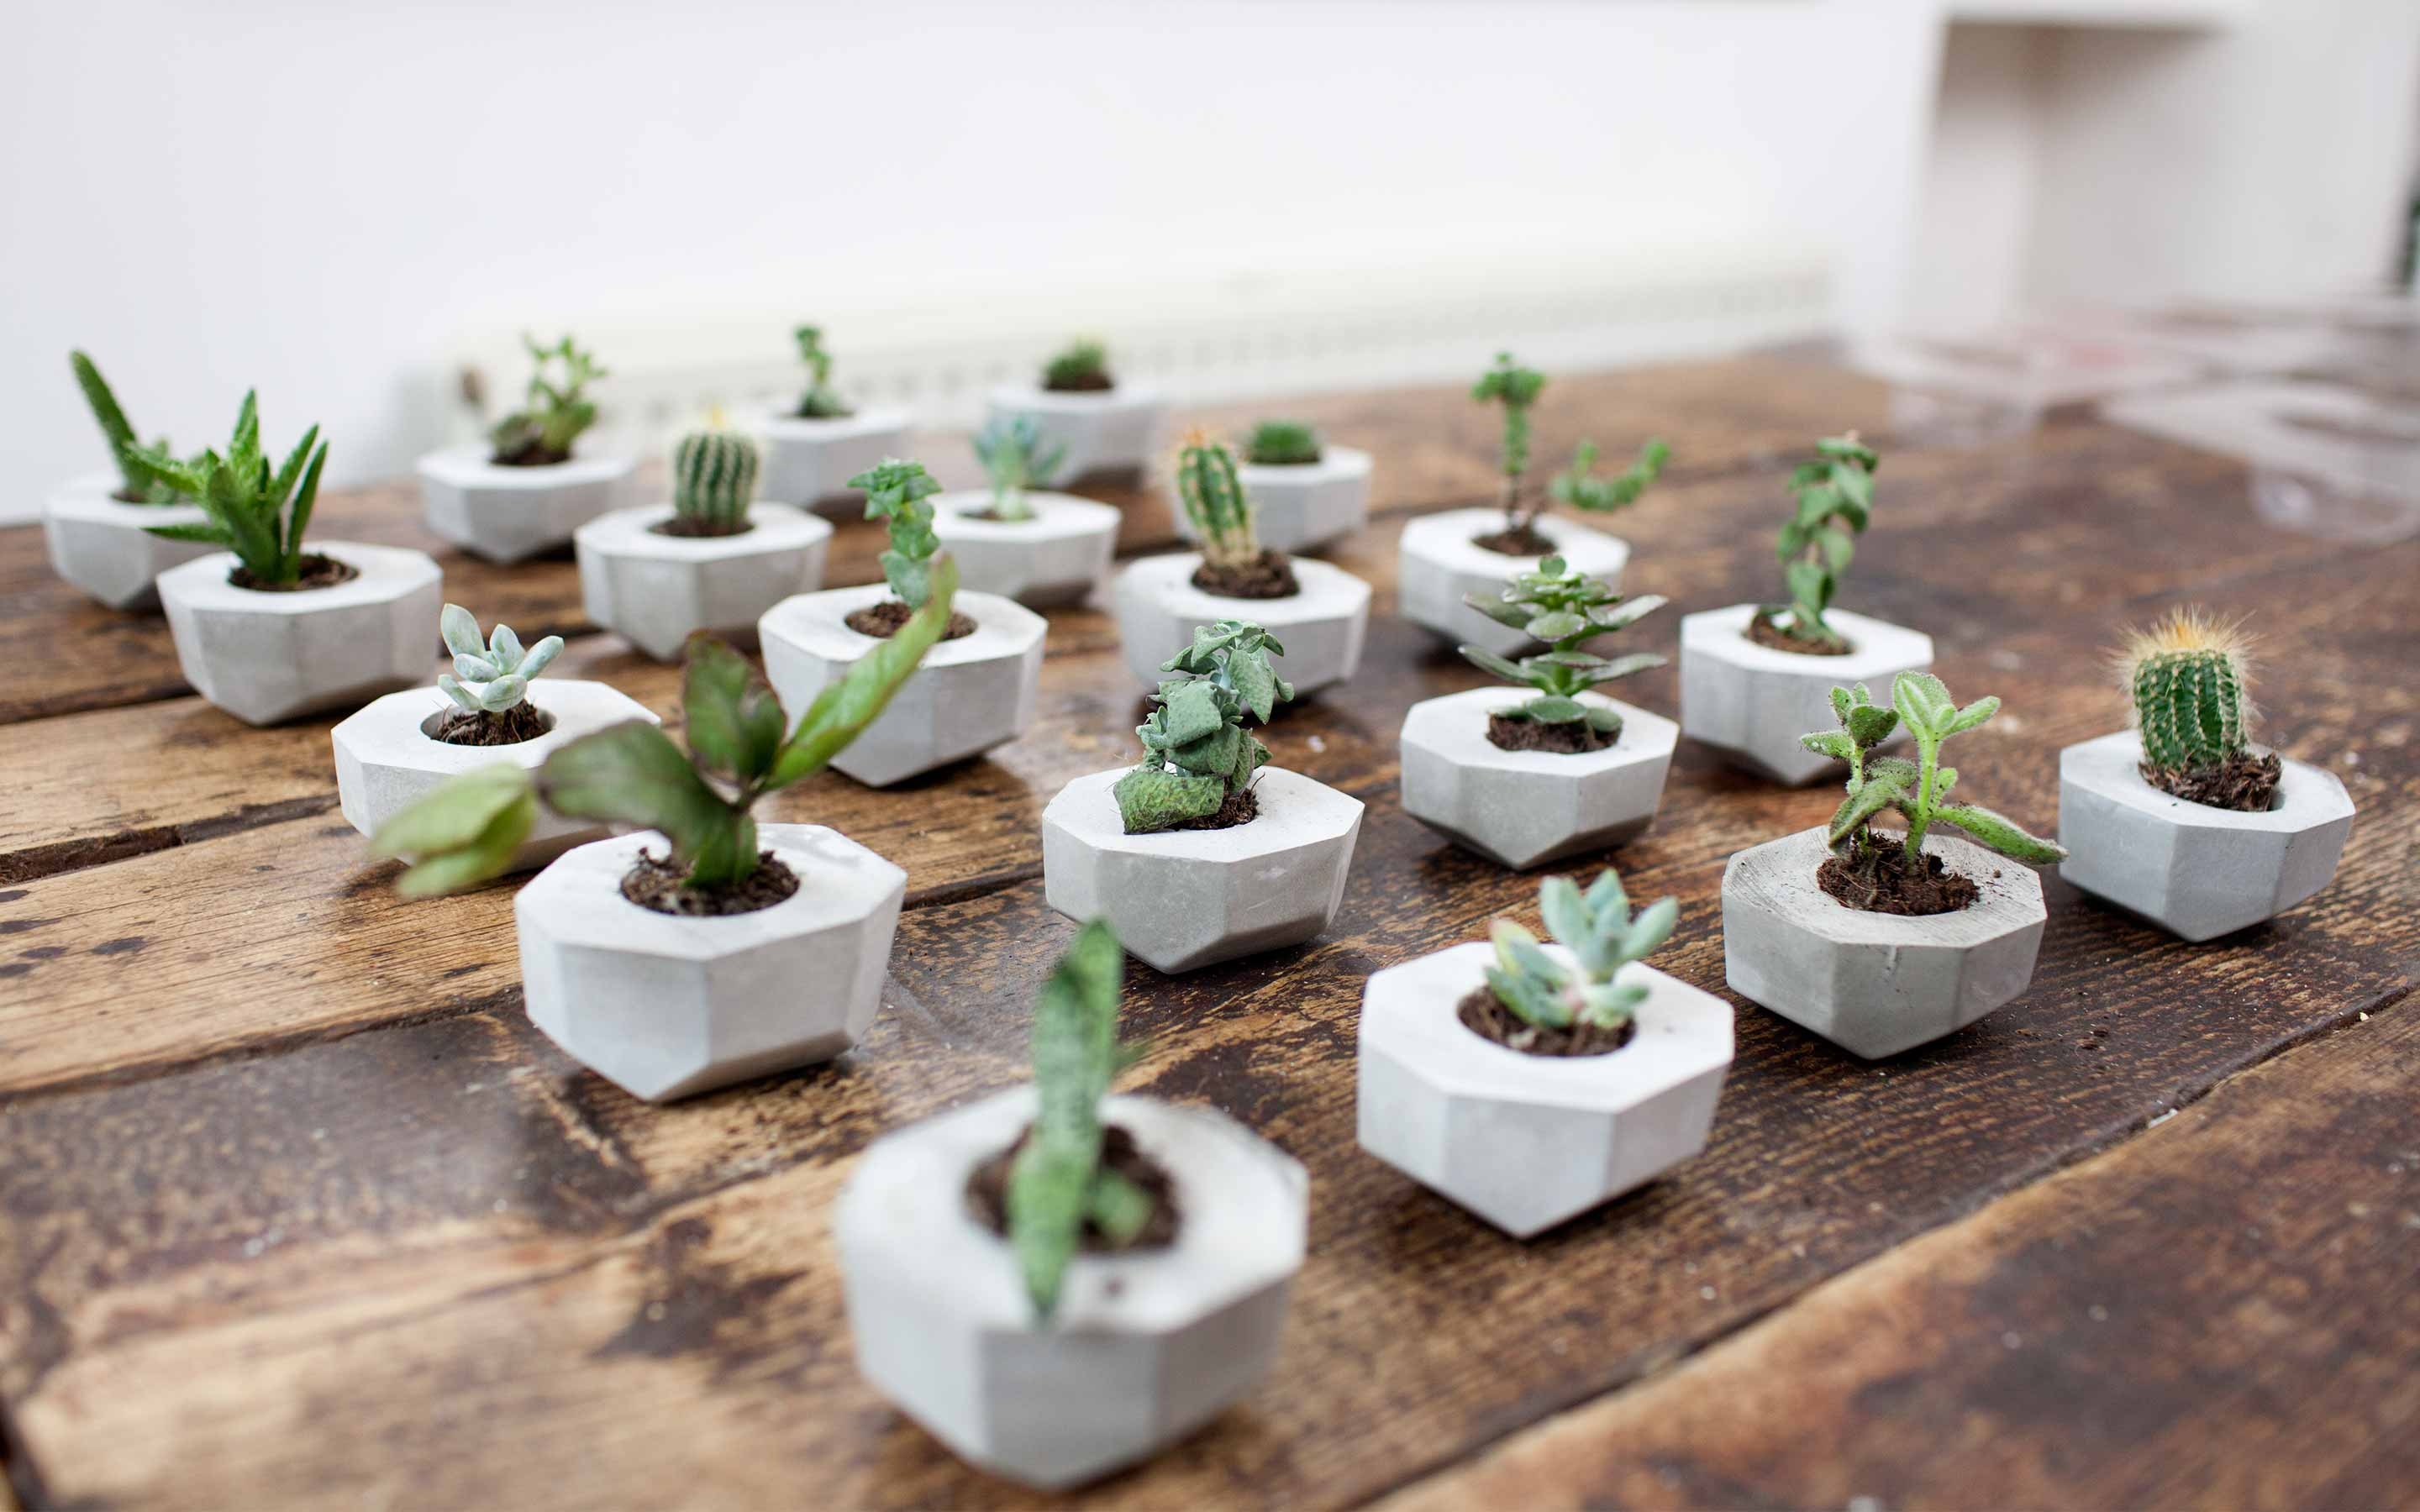 FormBox production line planter - http://weirdatheart.com/friday-favorite-formbox/